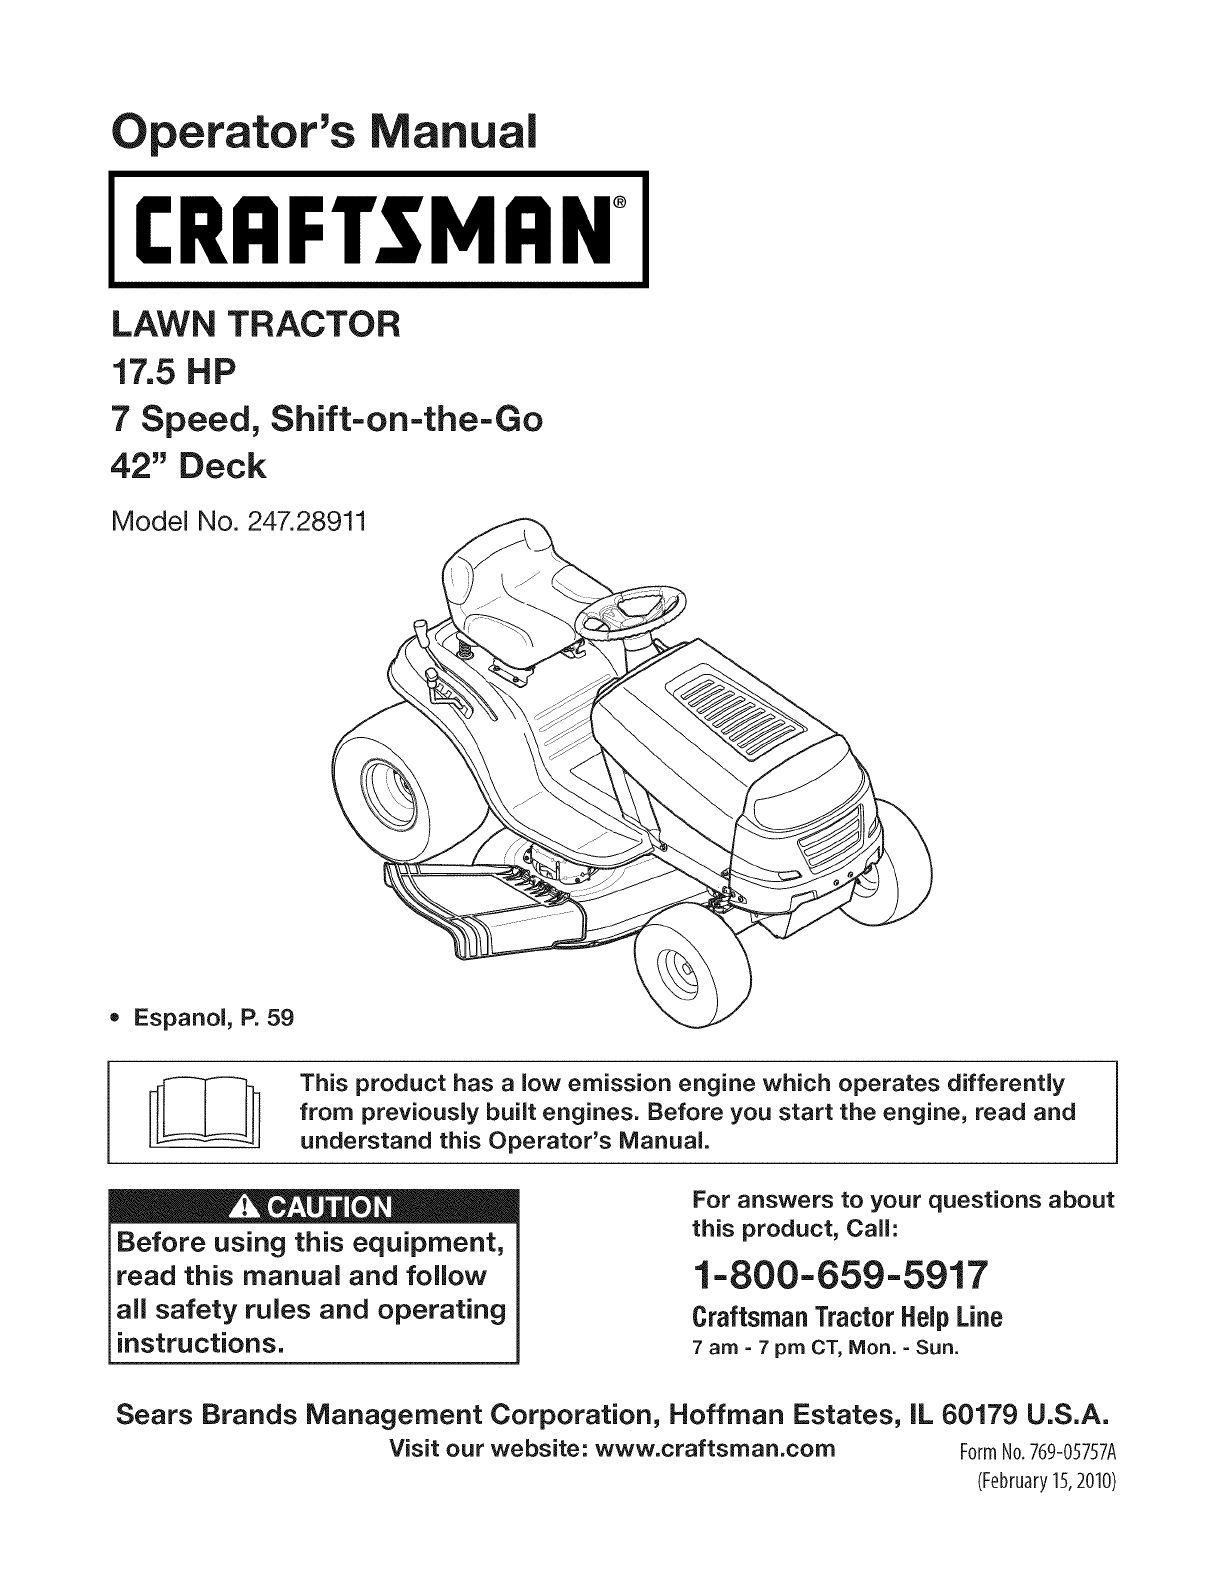 8e7b3384 e1d3 48fe bee0 c4dbc25d375e bg1 craftsman lawn mower 28911 user guide manualsonline com craftsman lawn tractor wiring schematic at edmiracle.co